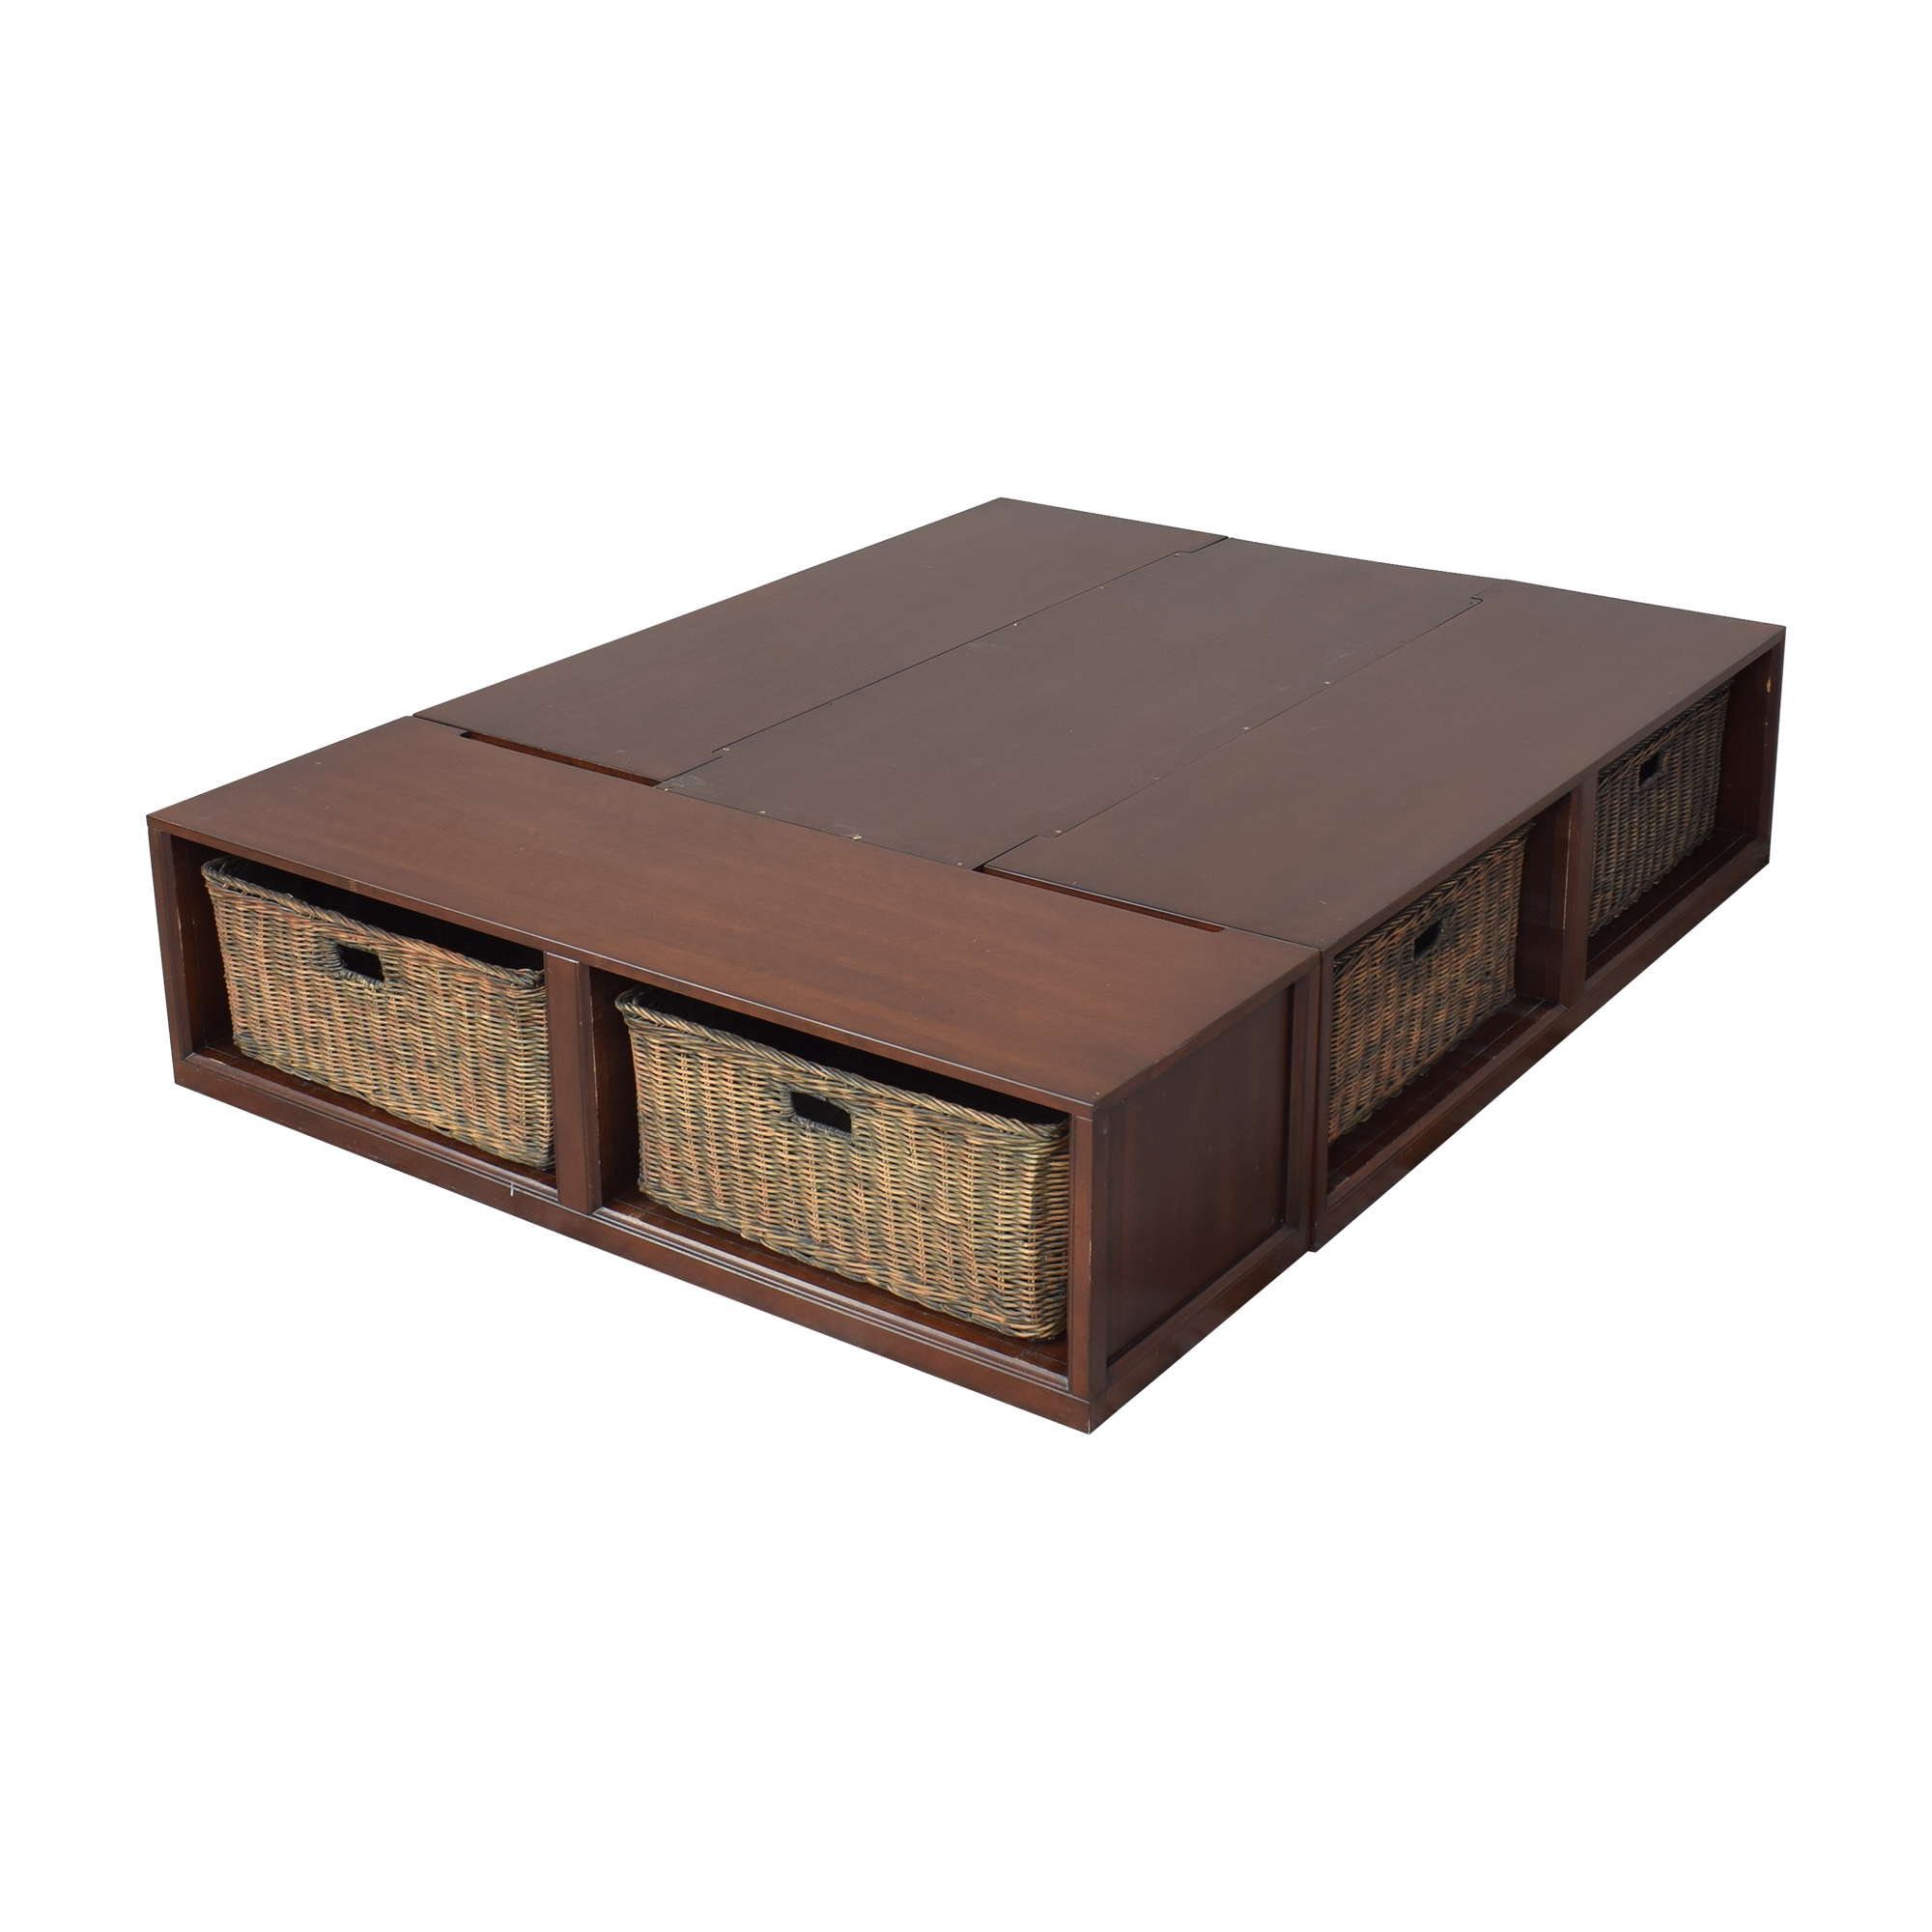 shop Pottery Barn Pottery Barn Stratton Storage Queen Platform Bed with Baskets online